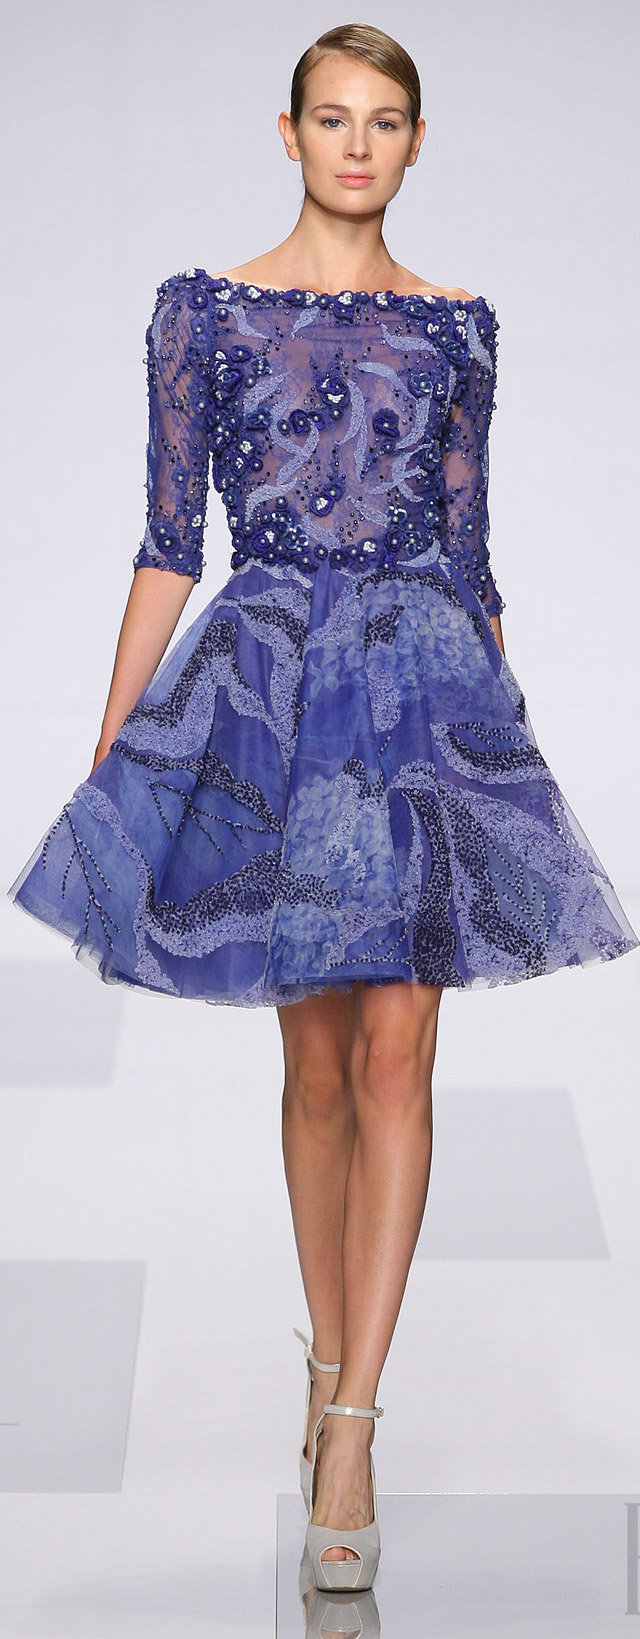 TONY WARD  COUTURE  FALL-WINTER 2013-2014 (8)